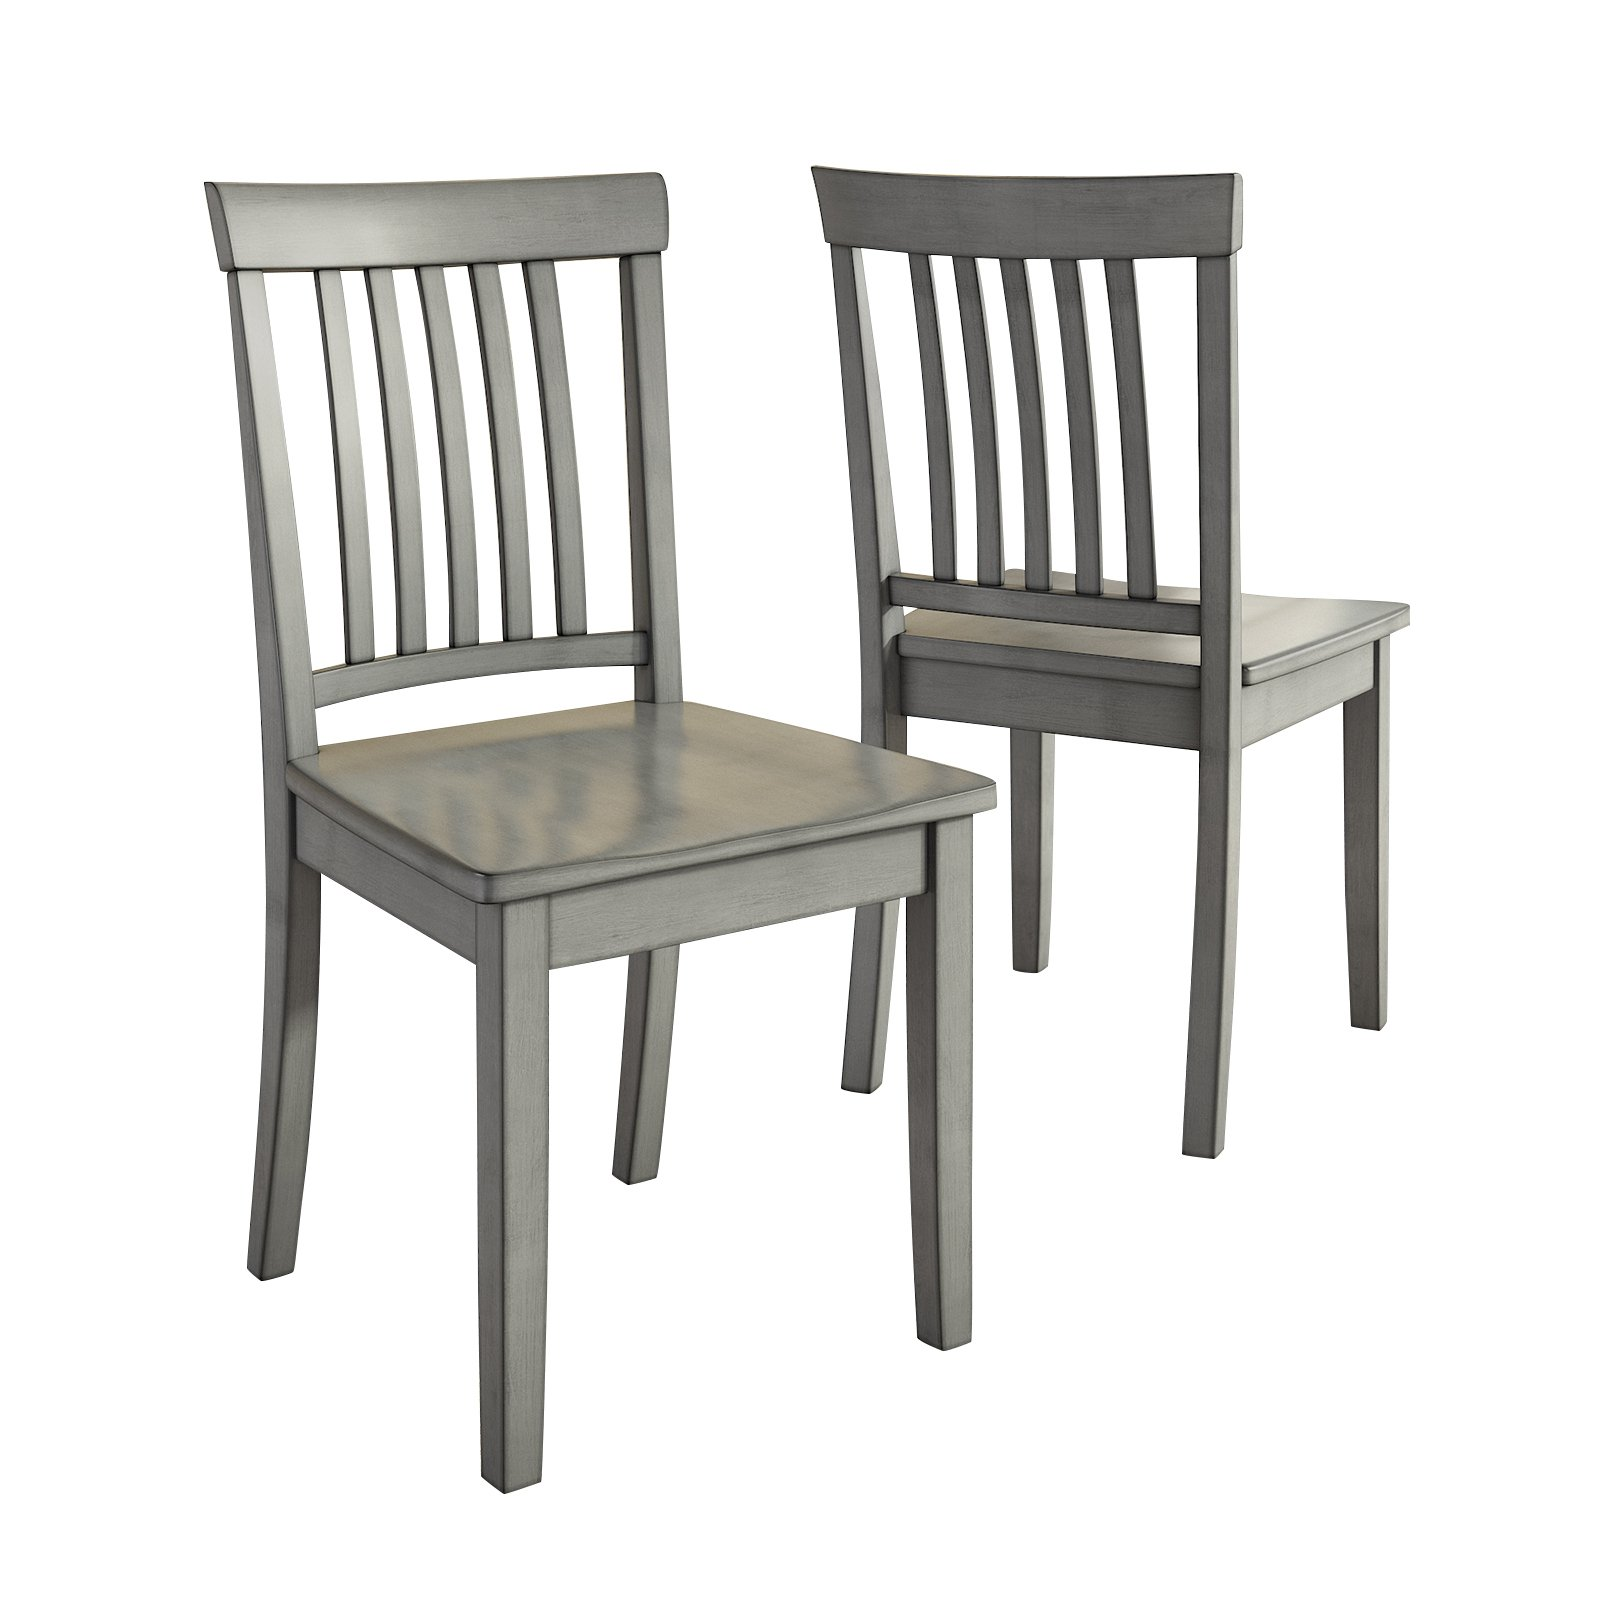 gray dining chair outdoor with side table kitchen chairs furniture walmart com product image lexington mission back set of 2 multiple colors